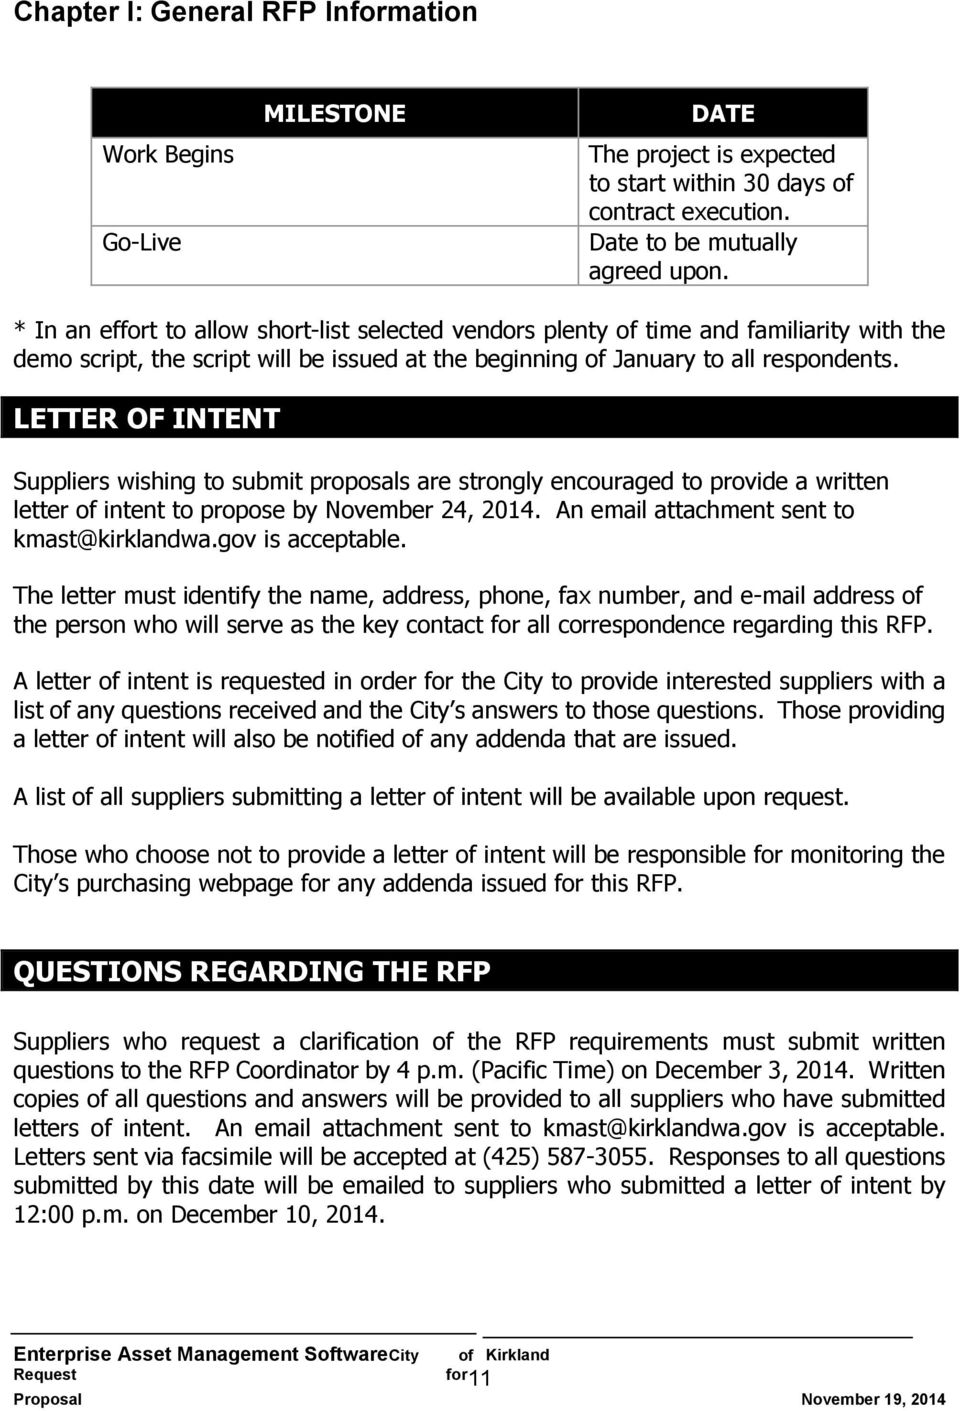 LETTER OF INTENT Suppliers wishing to submit proposals are strongly encouraged to provide a written letter of intent to propose by November 24, 2014. An email attachment sent to kmast@kirklandwa.